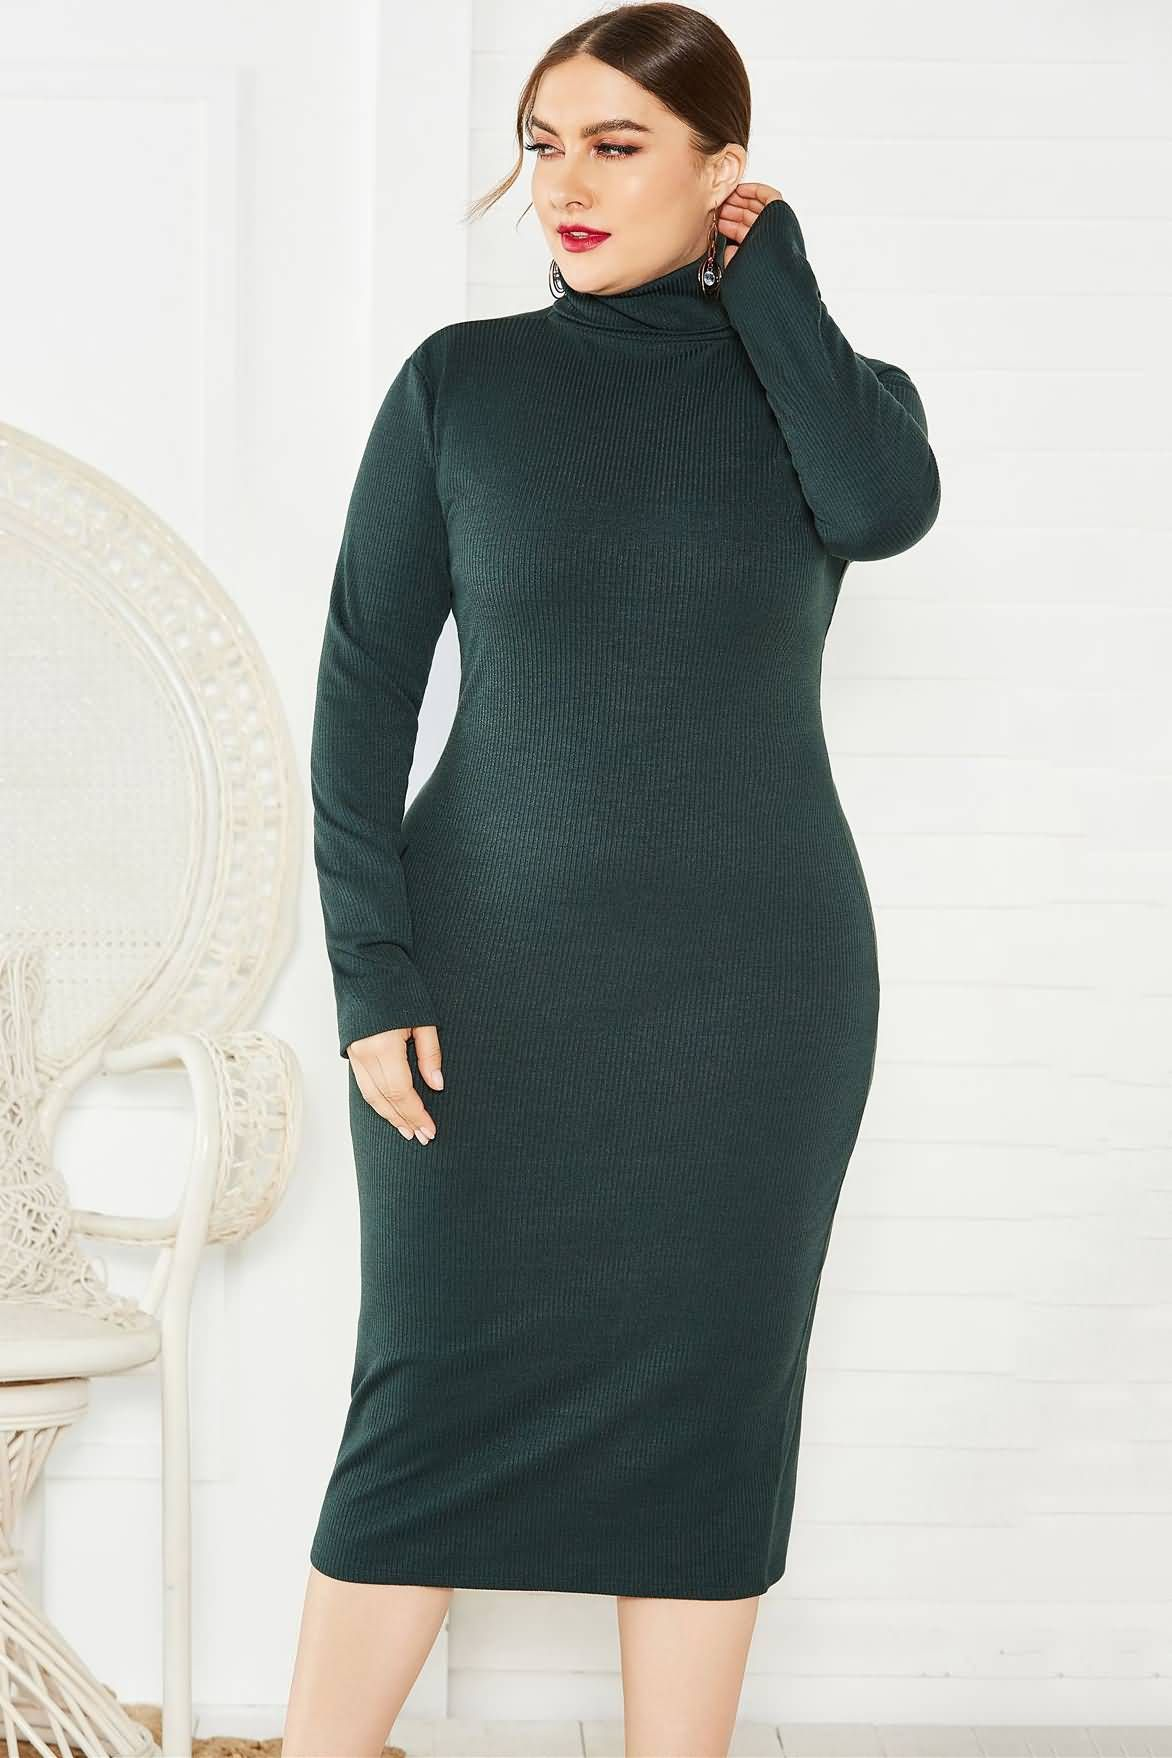 Dark Green Plus Size High Neck Long Sleeve Casual Ribbed Bodycon Sweater Dress Bodycon Sweater Dress Sweater Dress Plus Size Bodycon [ 1758 x 1172 Pixel ]